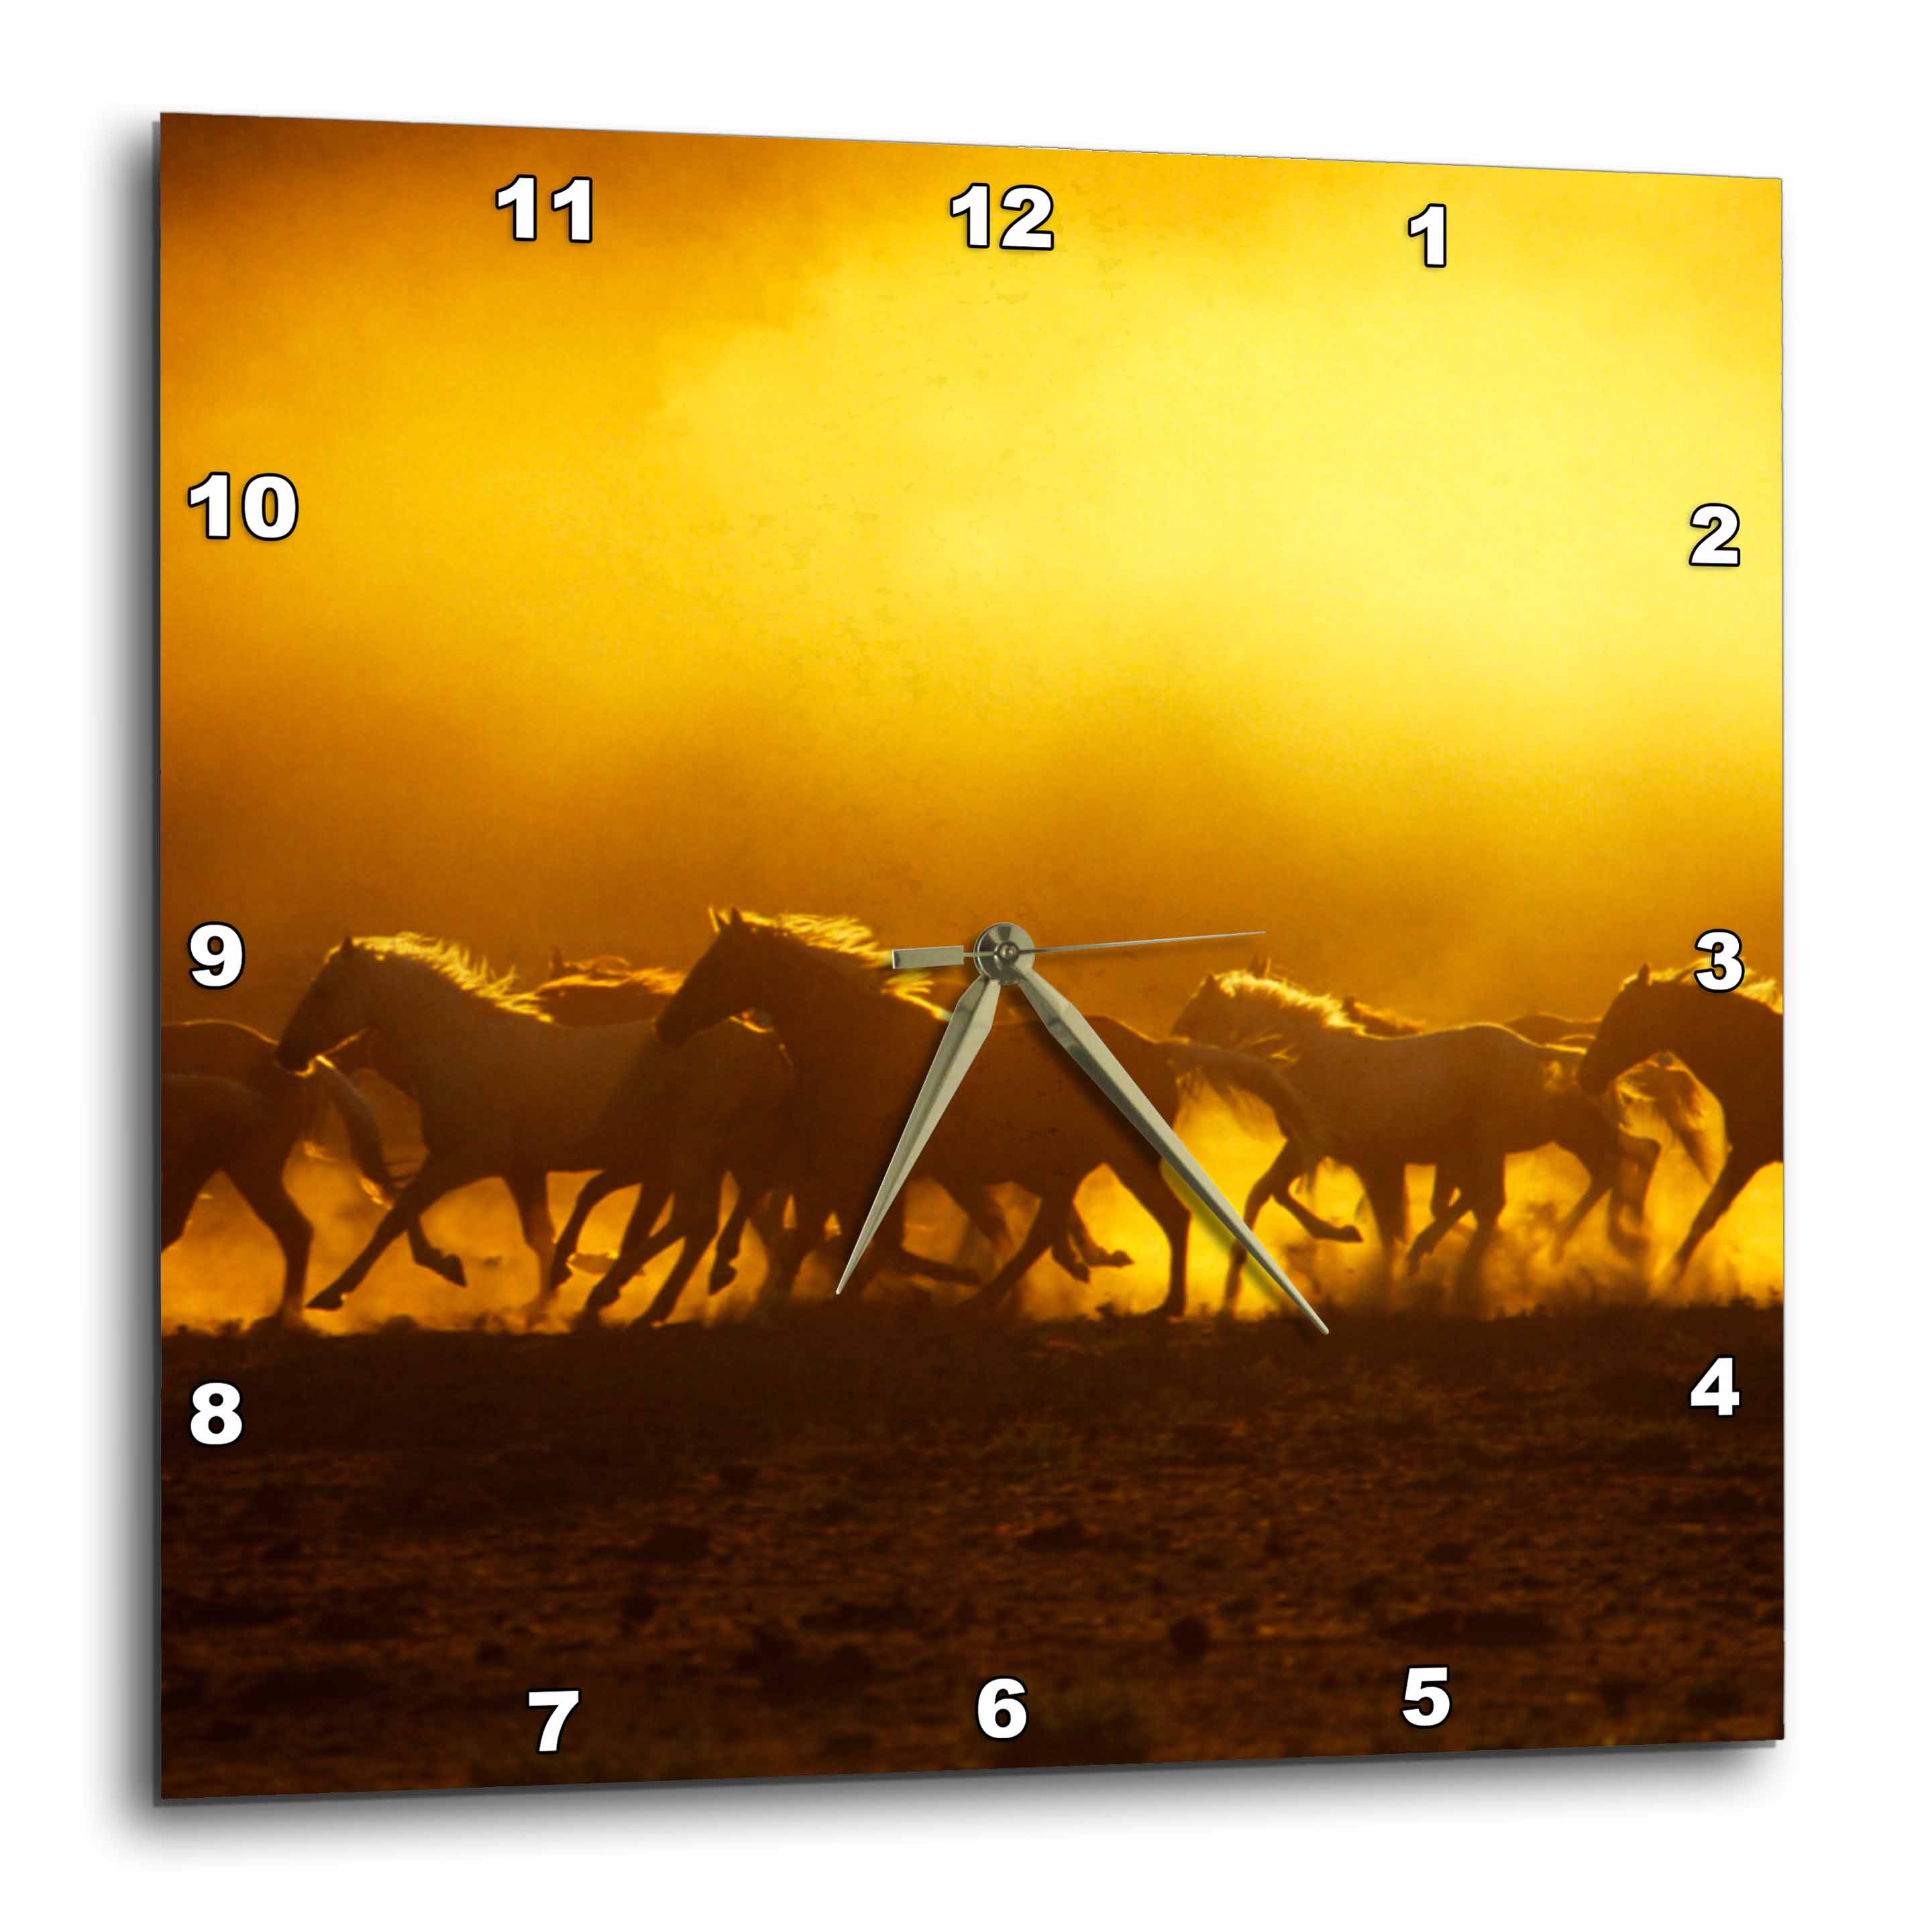 3dRose Oregon, Wild Kiger mustang horse kicking up dust - US38 BJA0029 - Jaynes Gallery, Wall Clock, 15 by 15-inch